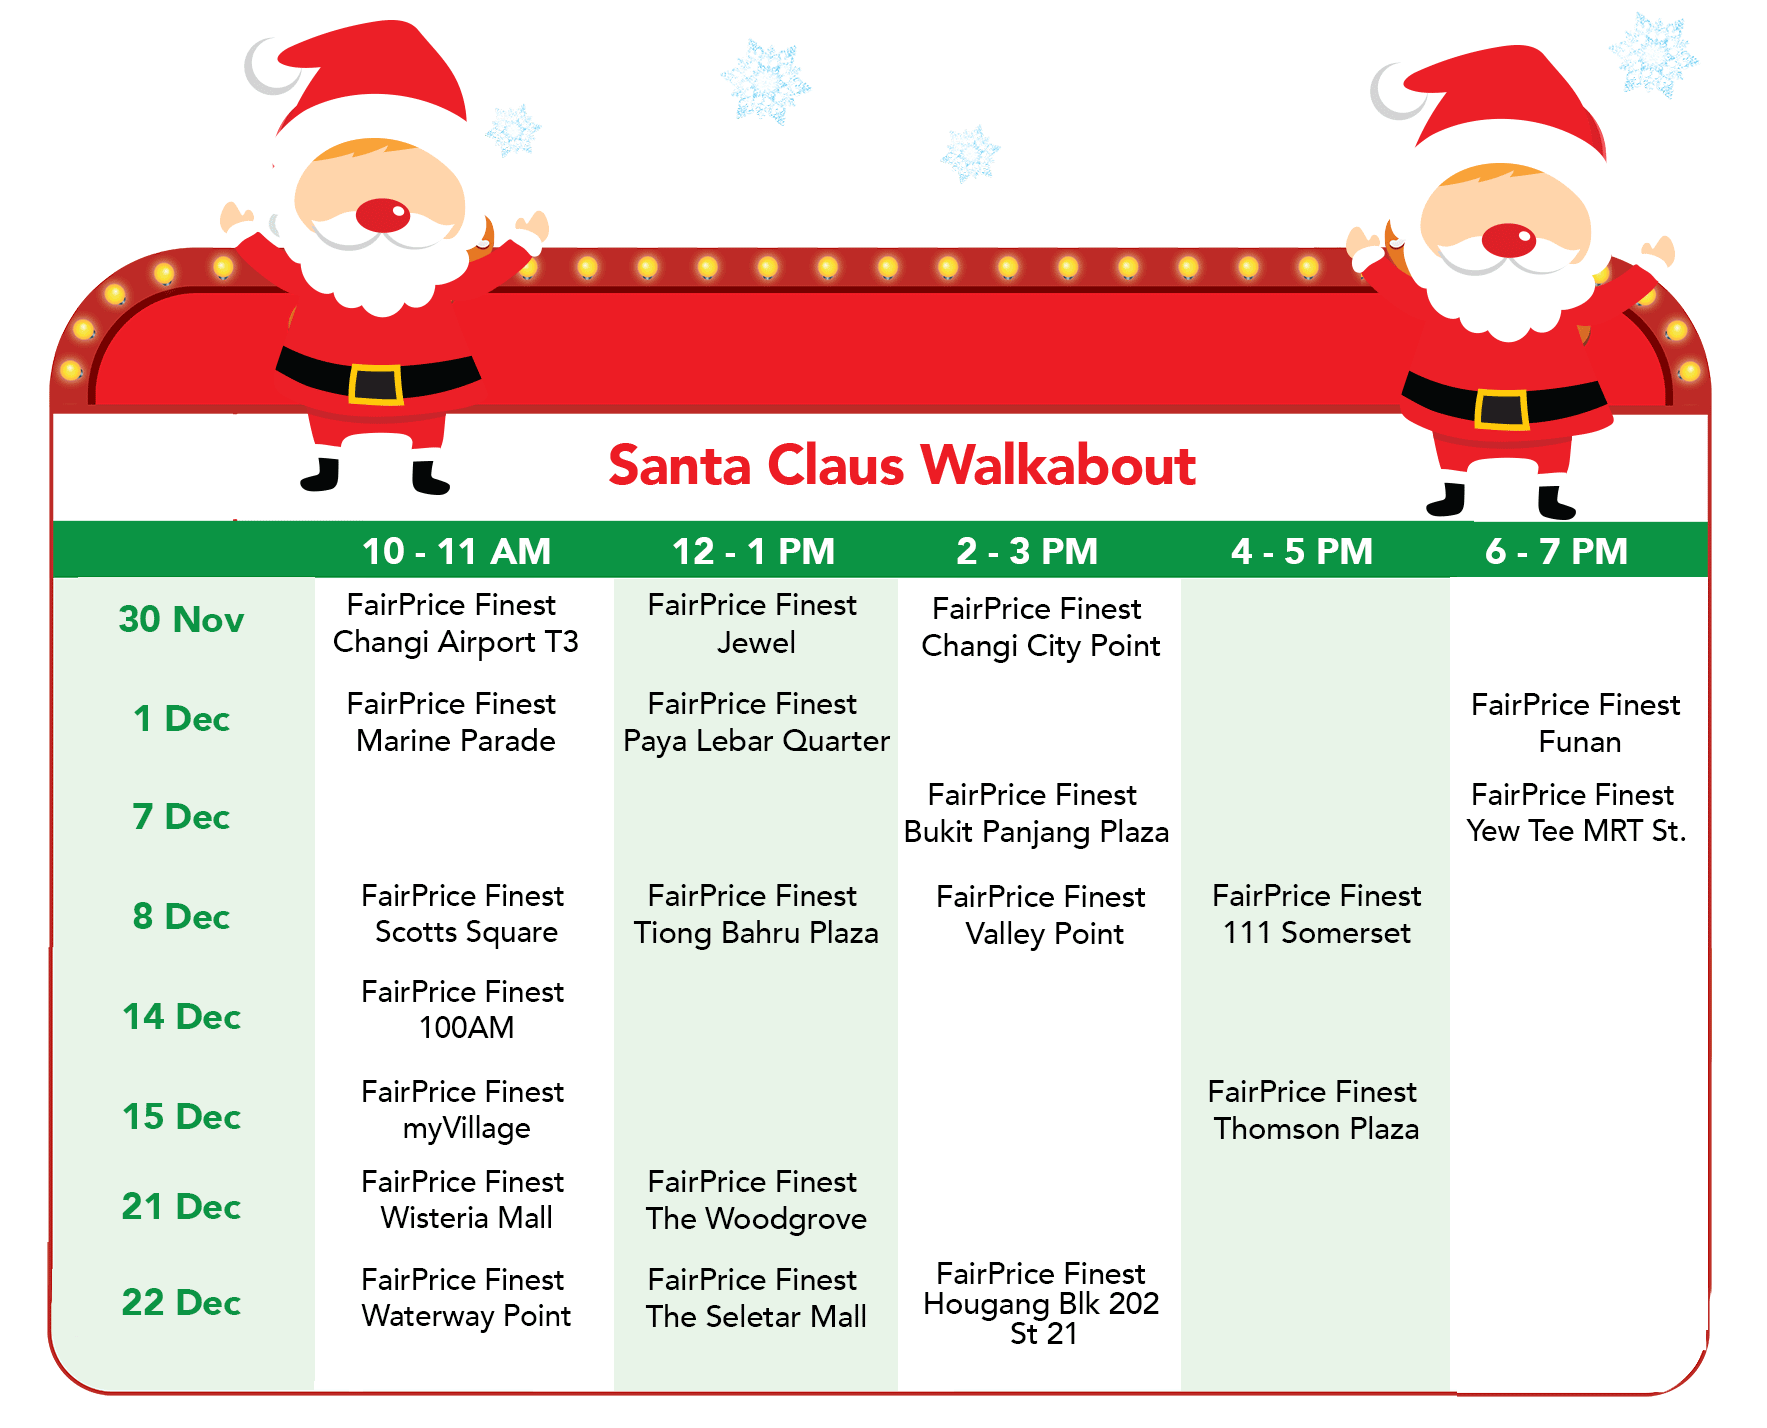 FairPrice Finest Christmas - Santa Claus Walkabout